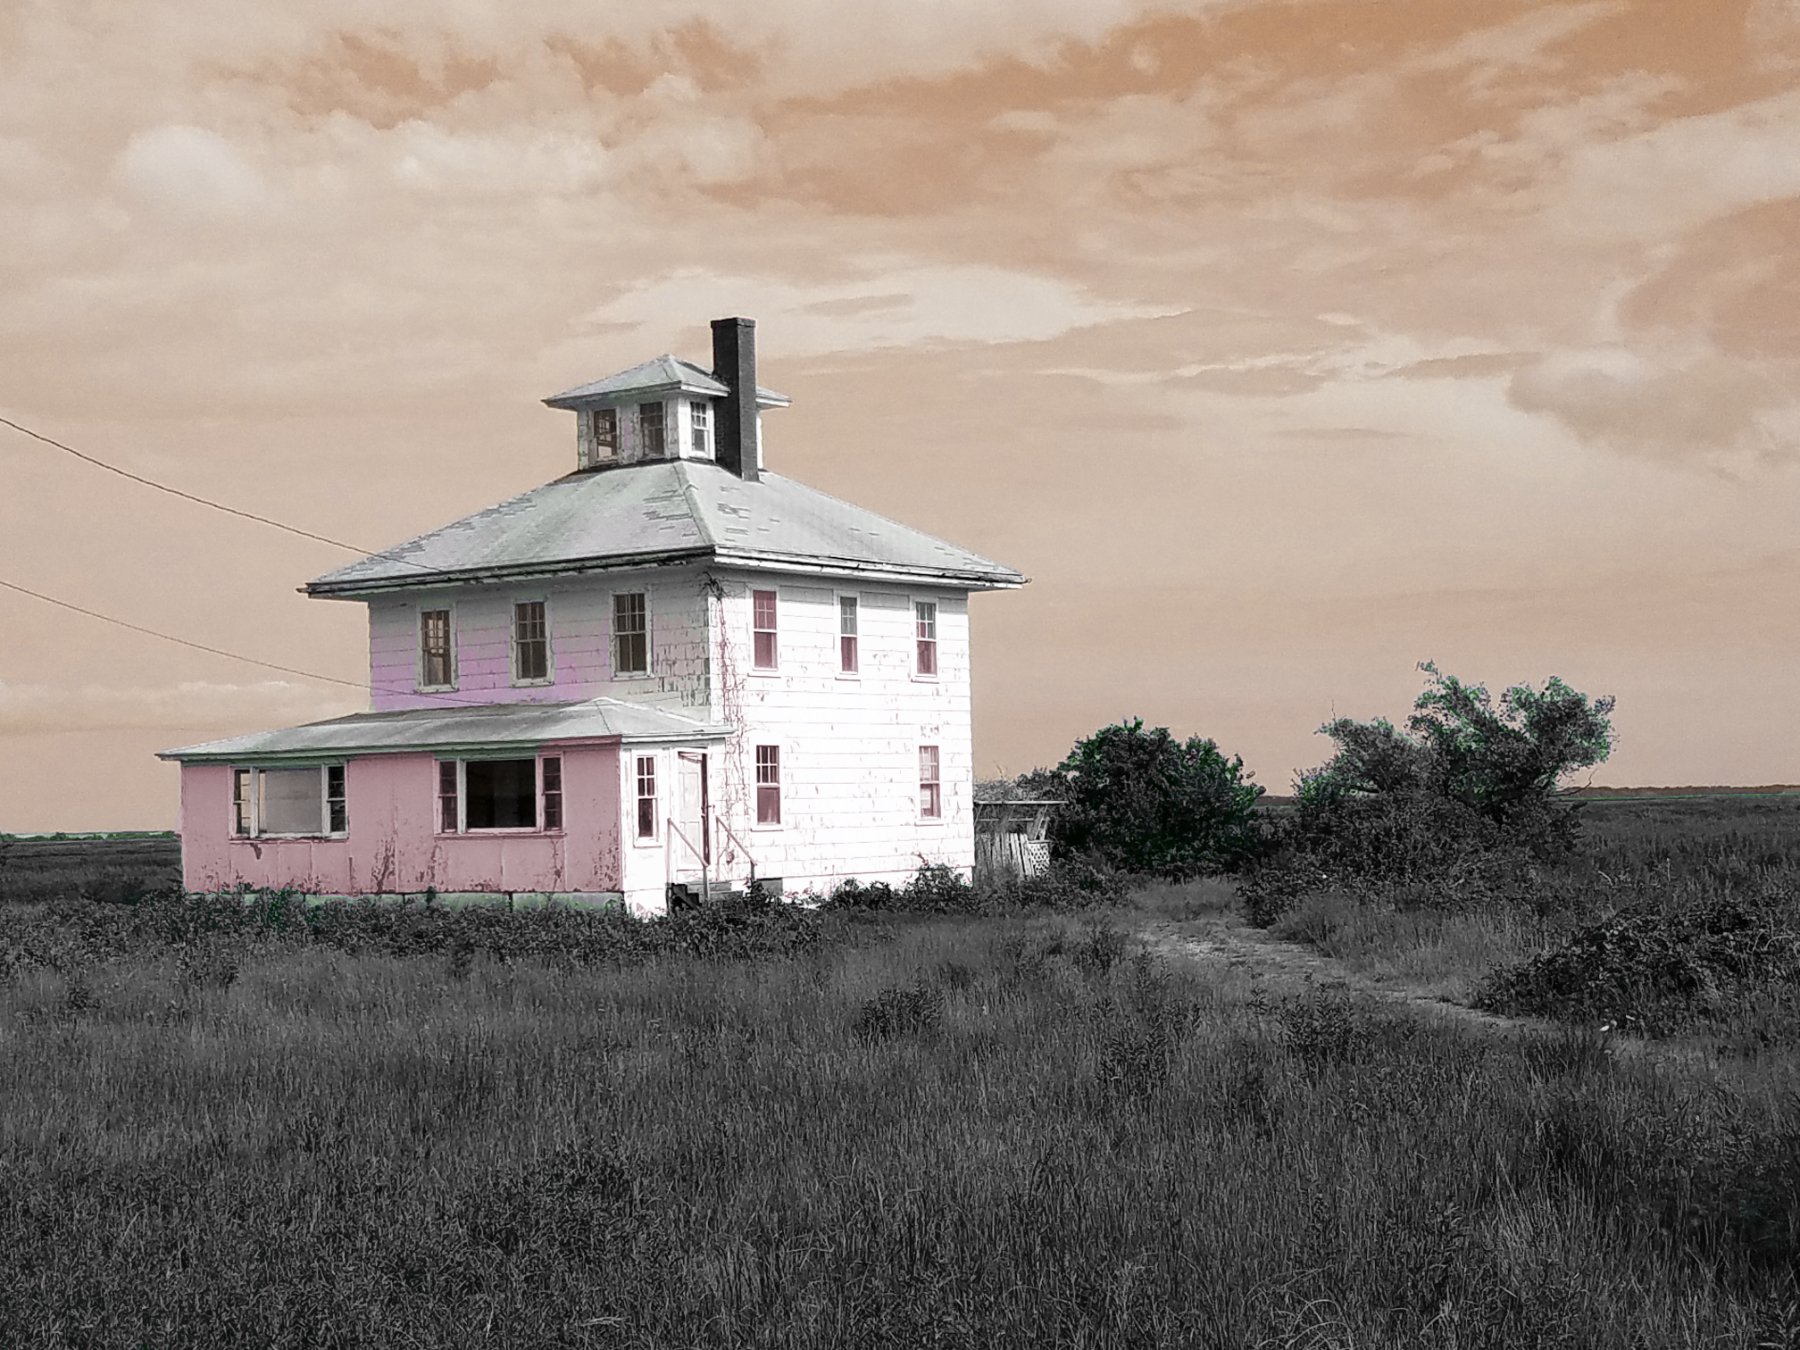 The Pink House waits, perhaps forlorn, perhaps anxious, to find out whether a new chapter awaits its life beside the marshy island shore; photo by Robin Catalano, effects by Jason Velázquez.